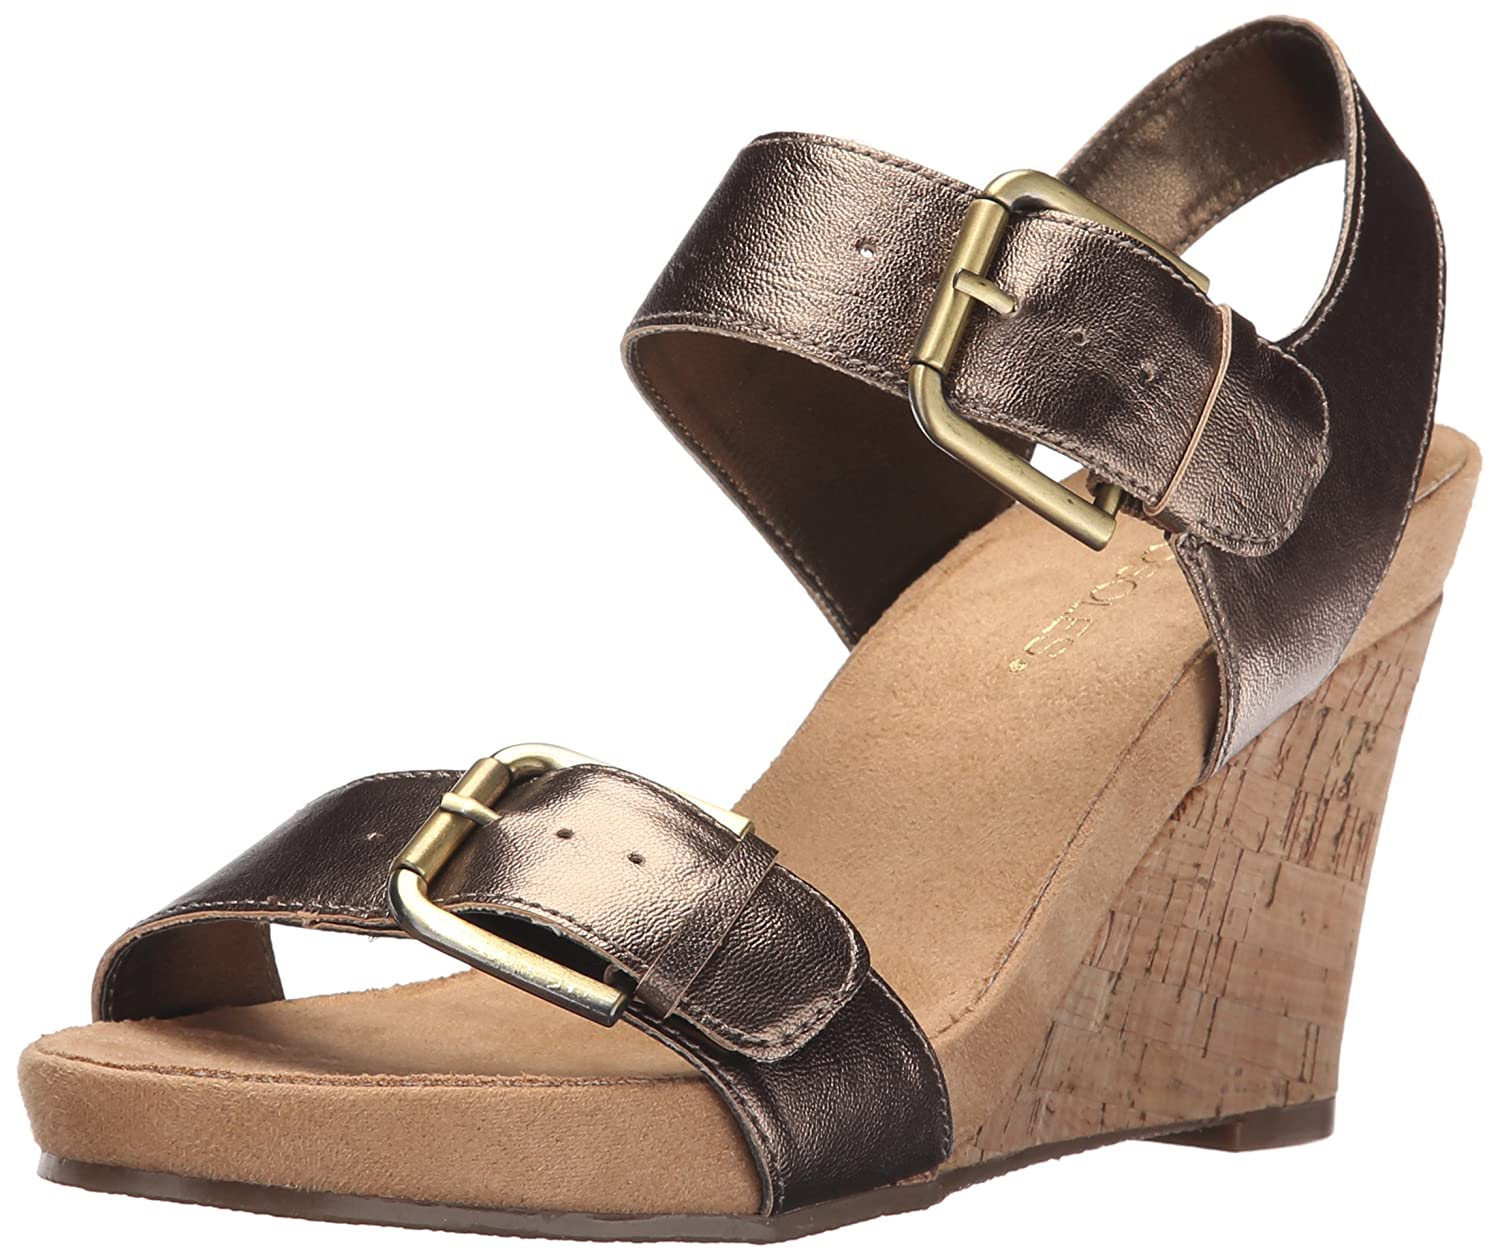 39cd5720dffb Aerosoles Women s Mega Plush Wedge Sandal